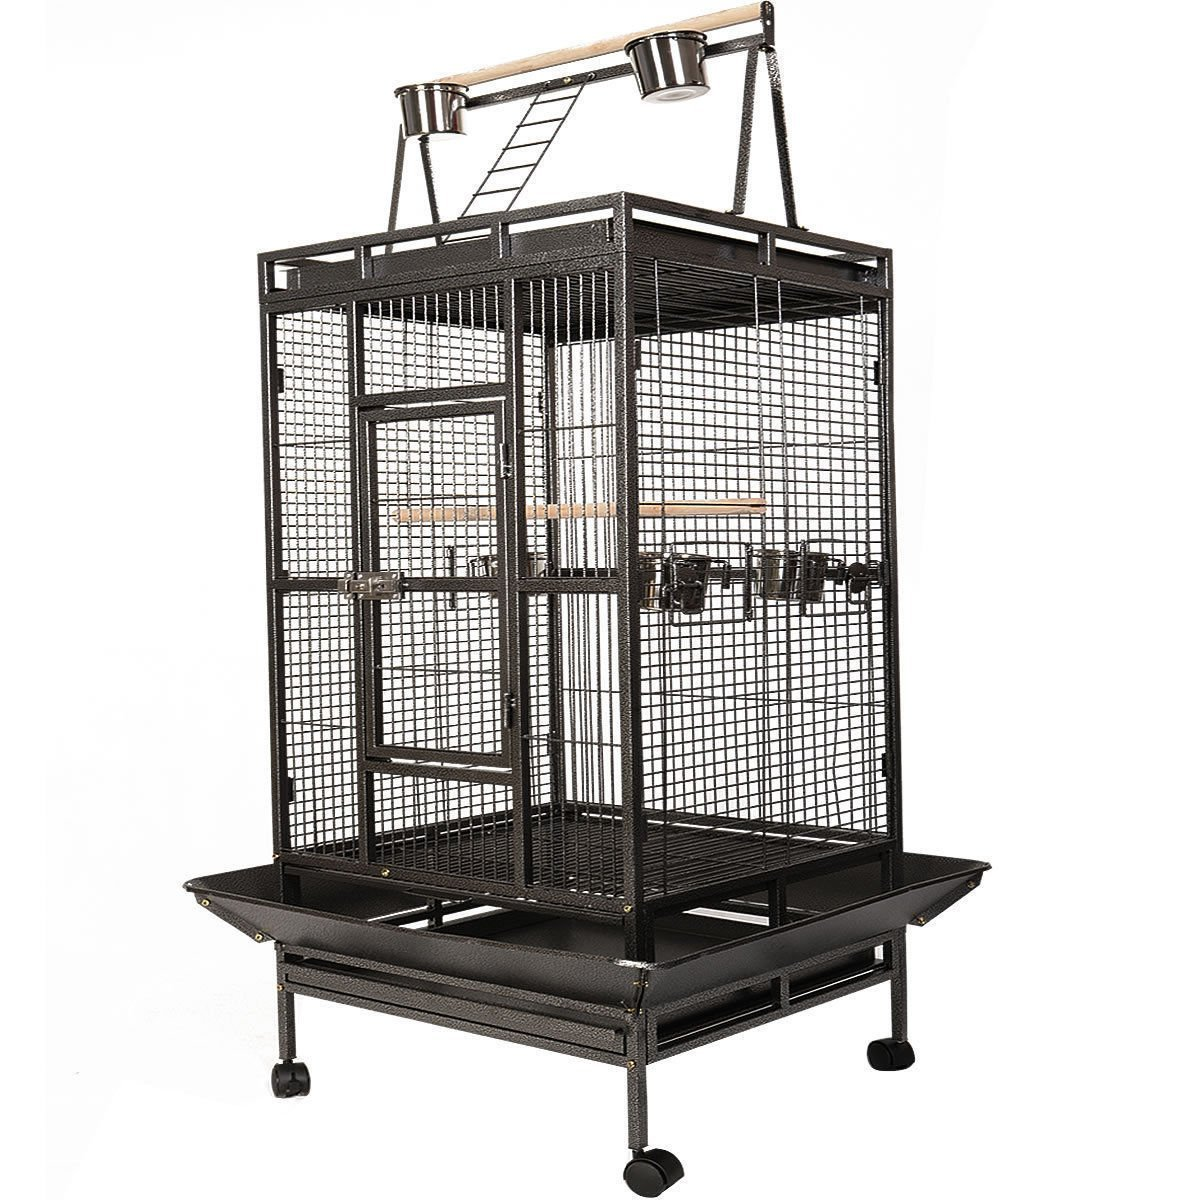 MASCARELLO® LARGE BIRD PARred MACAW AVIARY CAGE COOP WIRE MESH BREEDING AFRICAN Stand&Whee